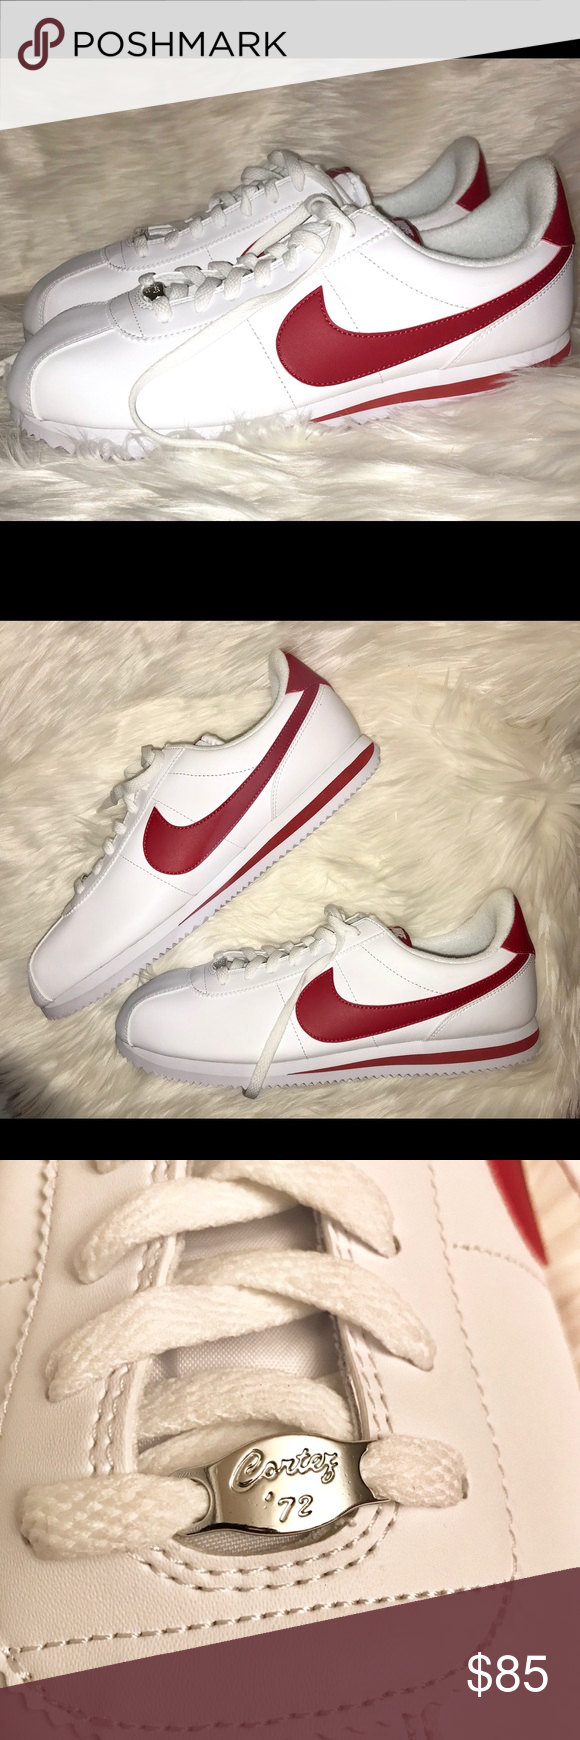 14e3ef089e4b68 New Rare Red Nike Cortez Men s 13 This Nike Cortez (red check AND red  stripe) is rarer than a white whale. They are completely sold out